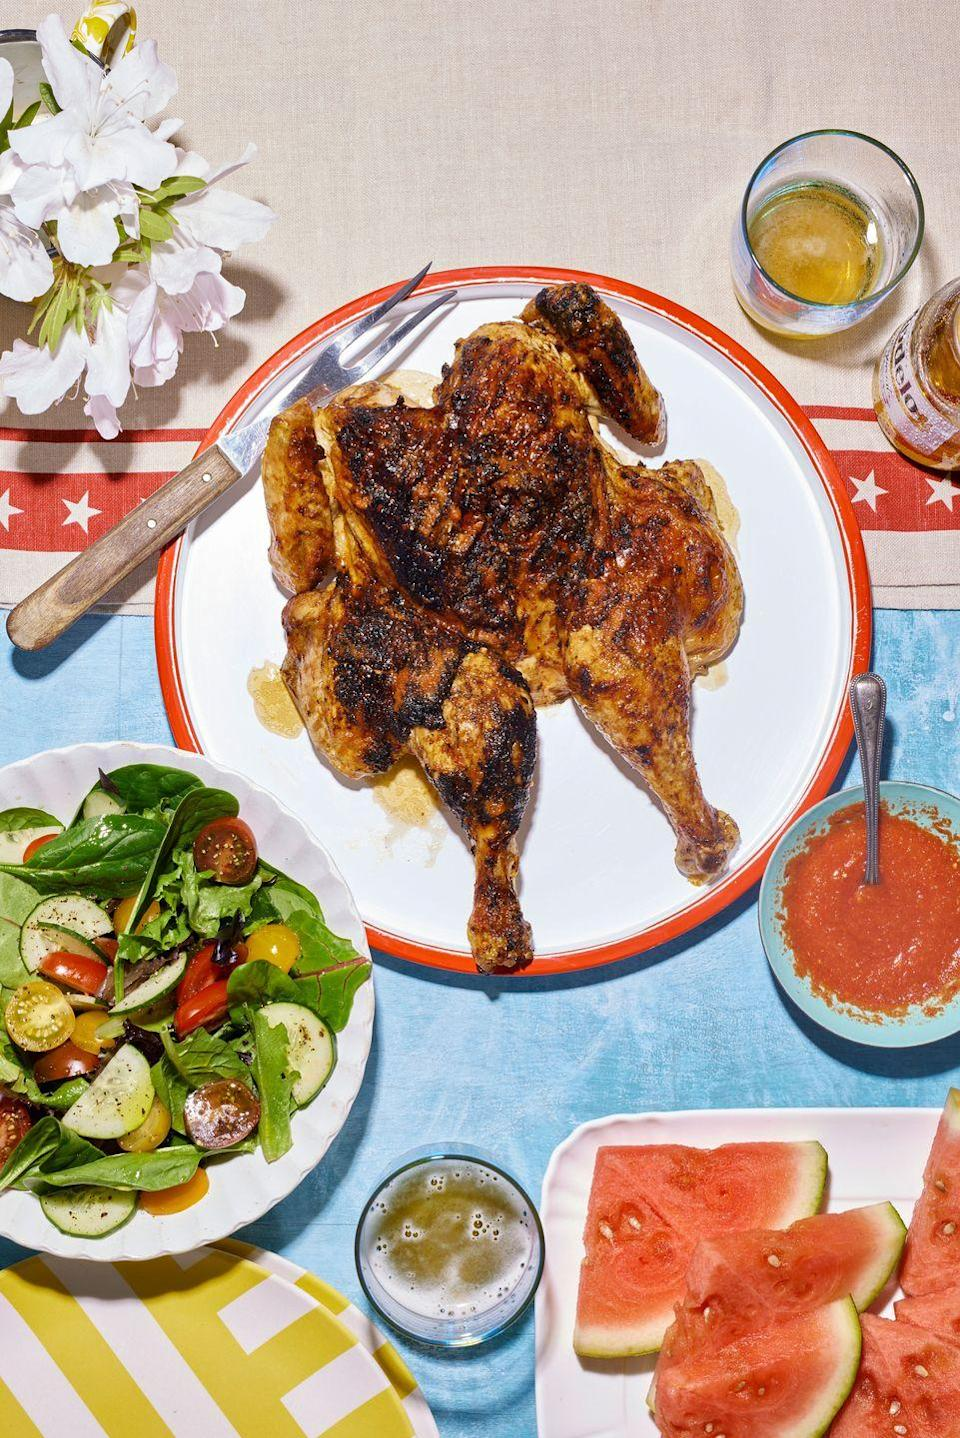 """<p>What to really up the wow-factor this Fourth of July? This spicy bird is a surefire centerpiece hit.<br></p><p><strong><a href=""""https://www.countryliving.com/food-drinks/a36742472/spatchcock-chicken-with-piri-piri-sauce-recipe/"""" rel=""""nofollow noopener"""" target=""""_blank"""" data-ylk=""""slk:Get the recipe"""" class=""""link rapid-noclick-resp"""">Get the recipe</a>.</strong></p>"""